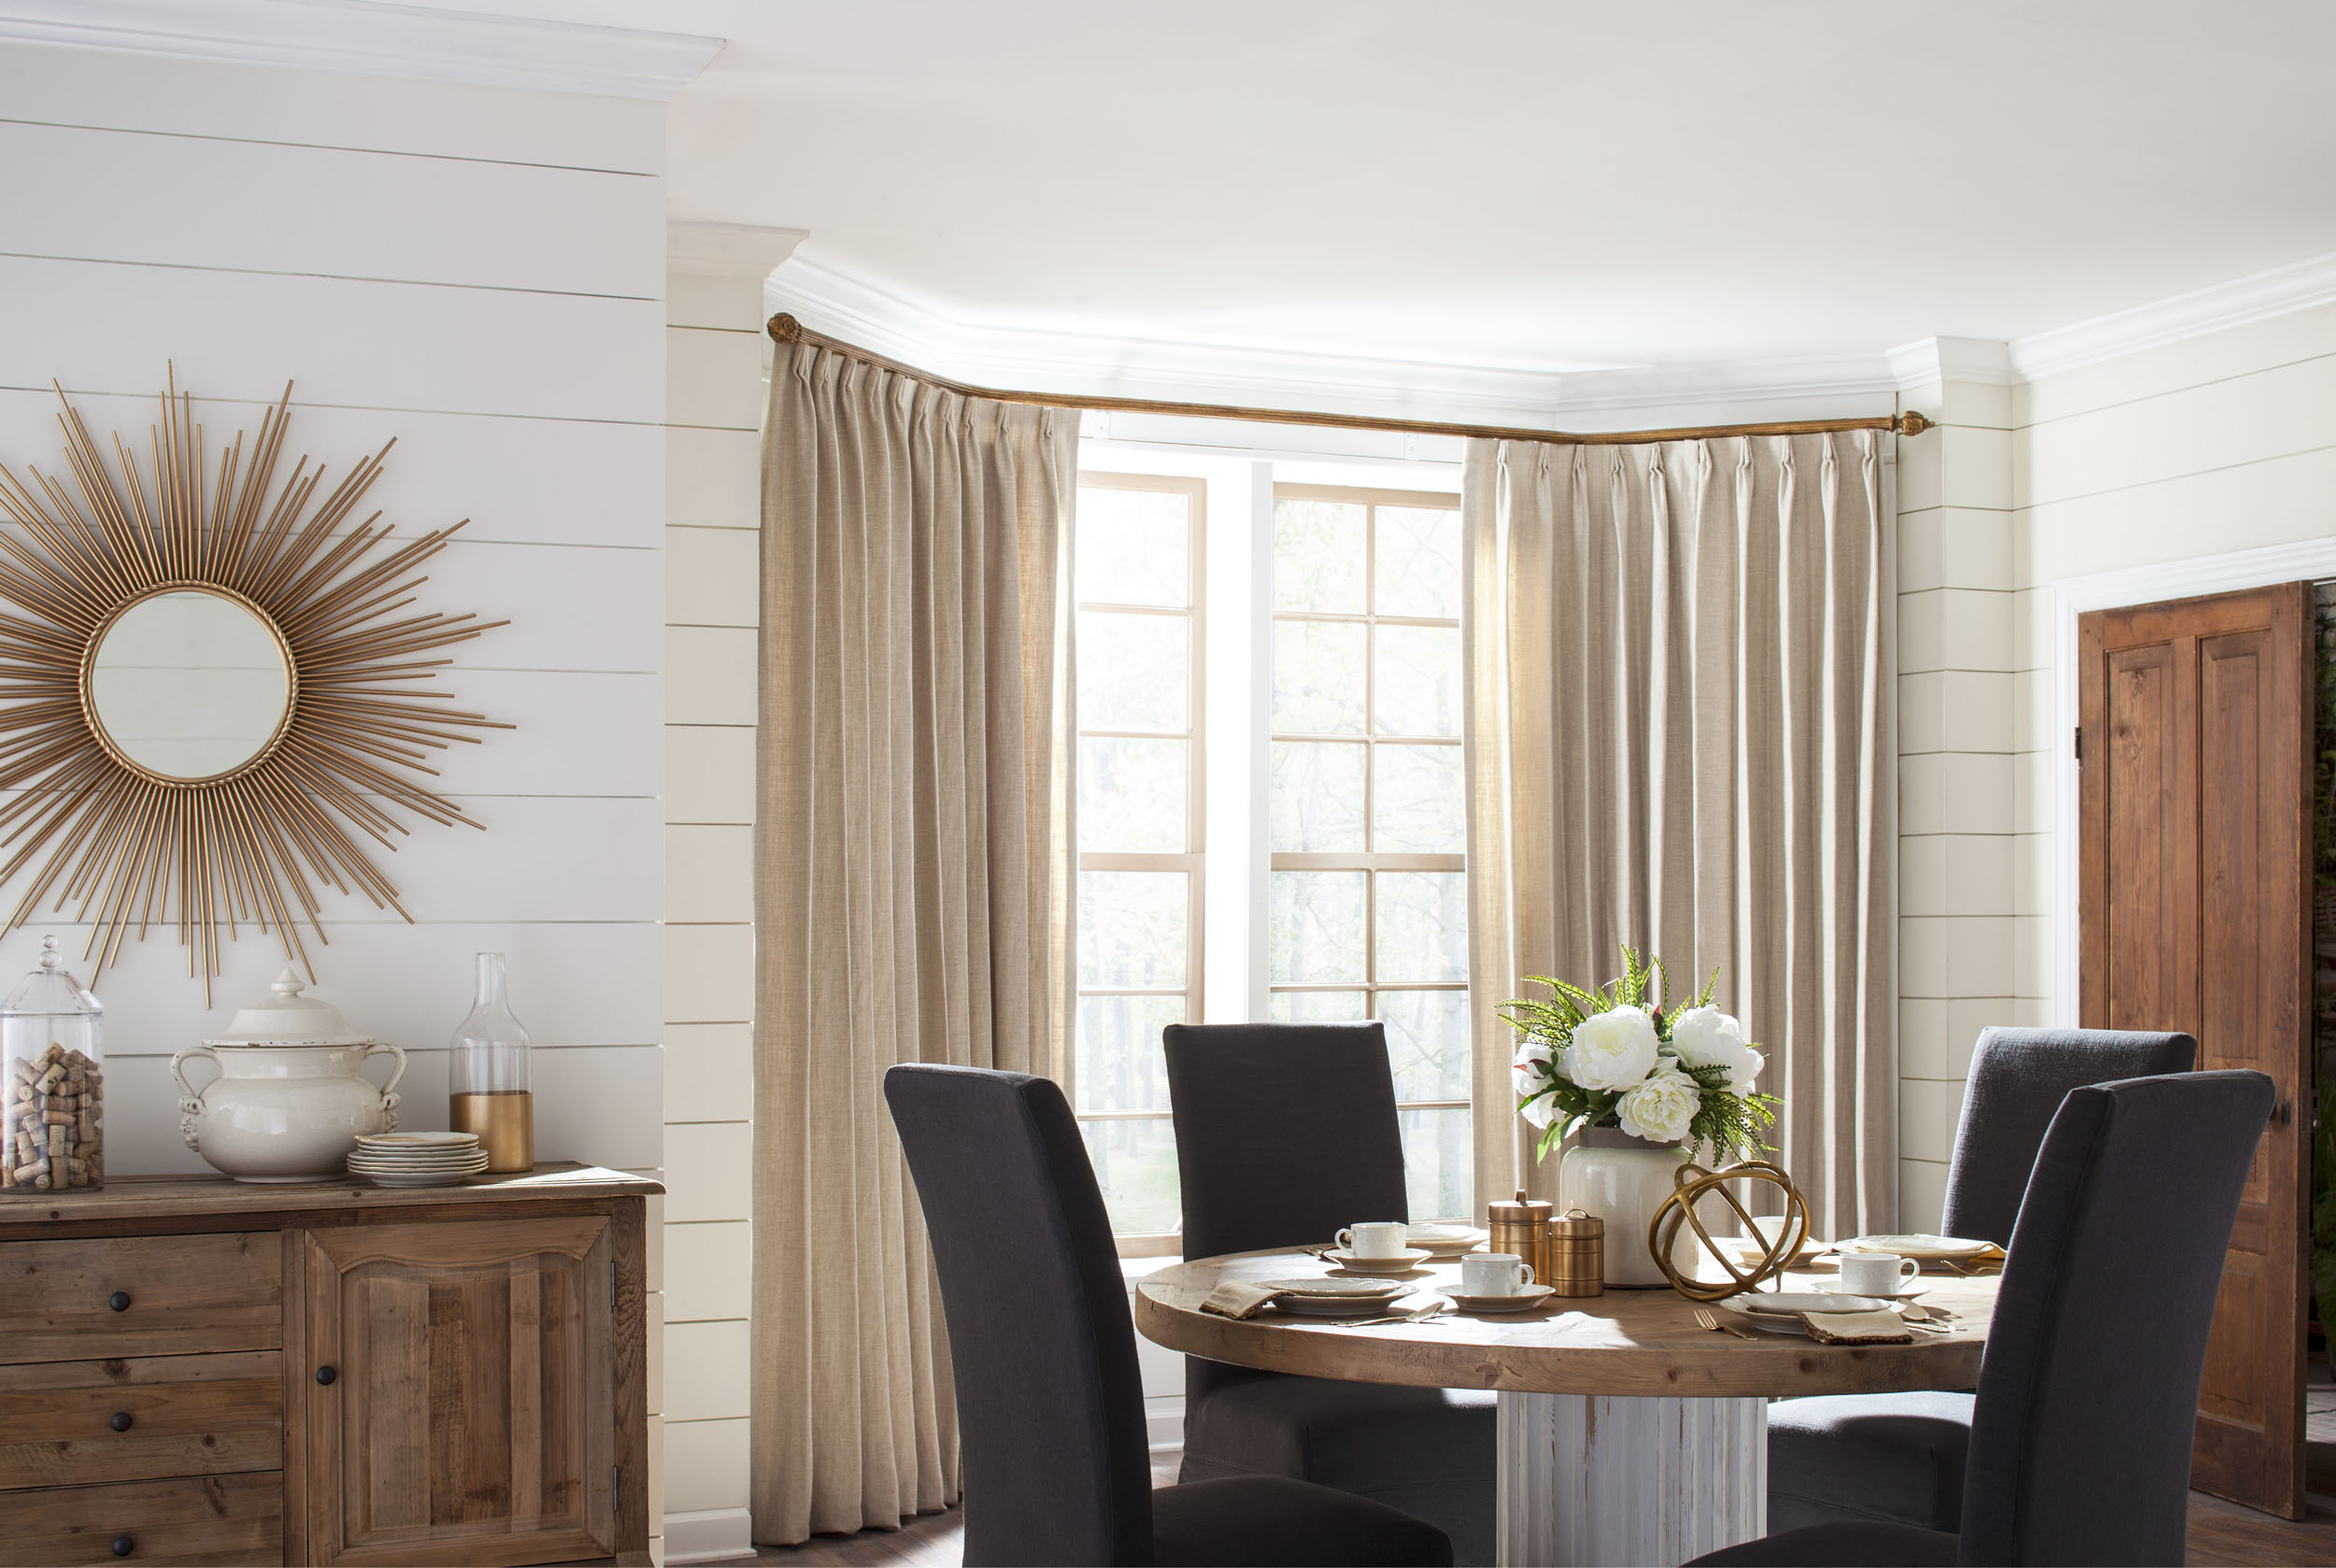 Select Wood Bent Traverse Rod for Bay Window